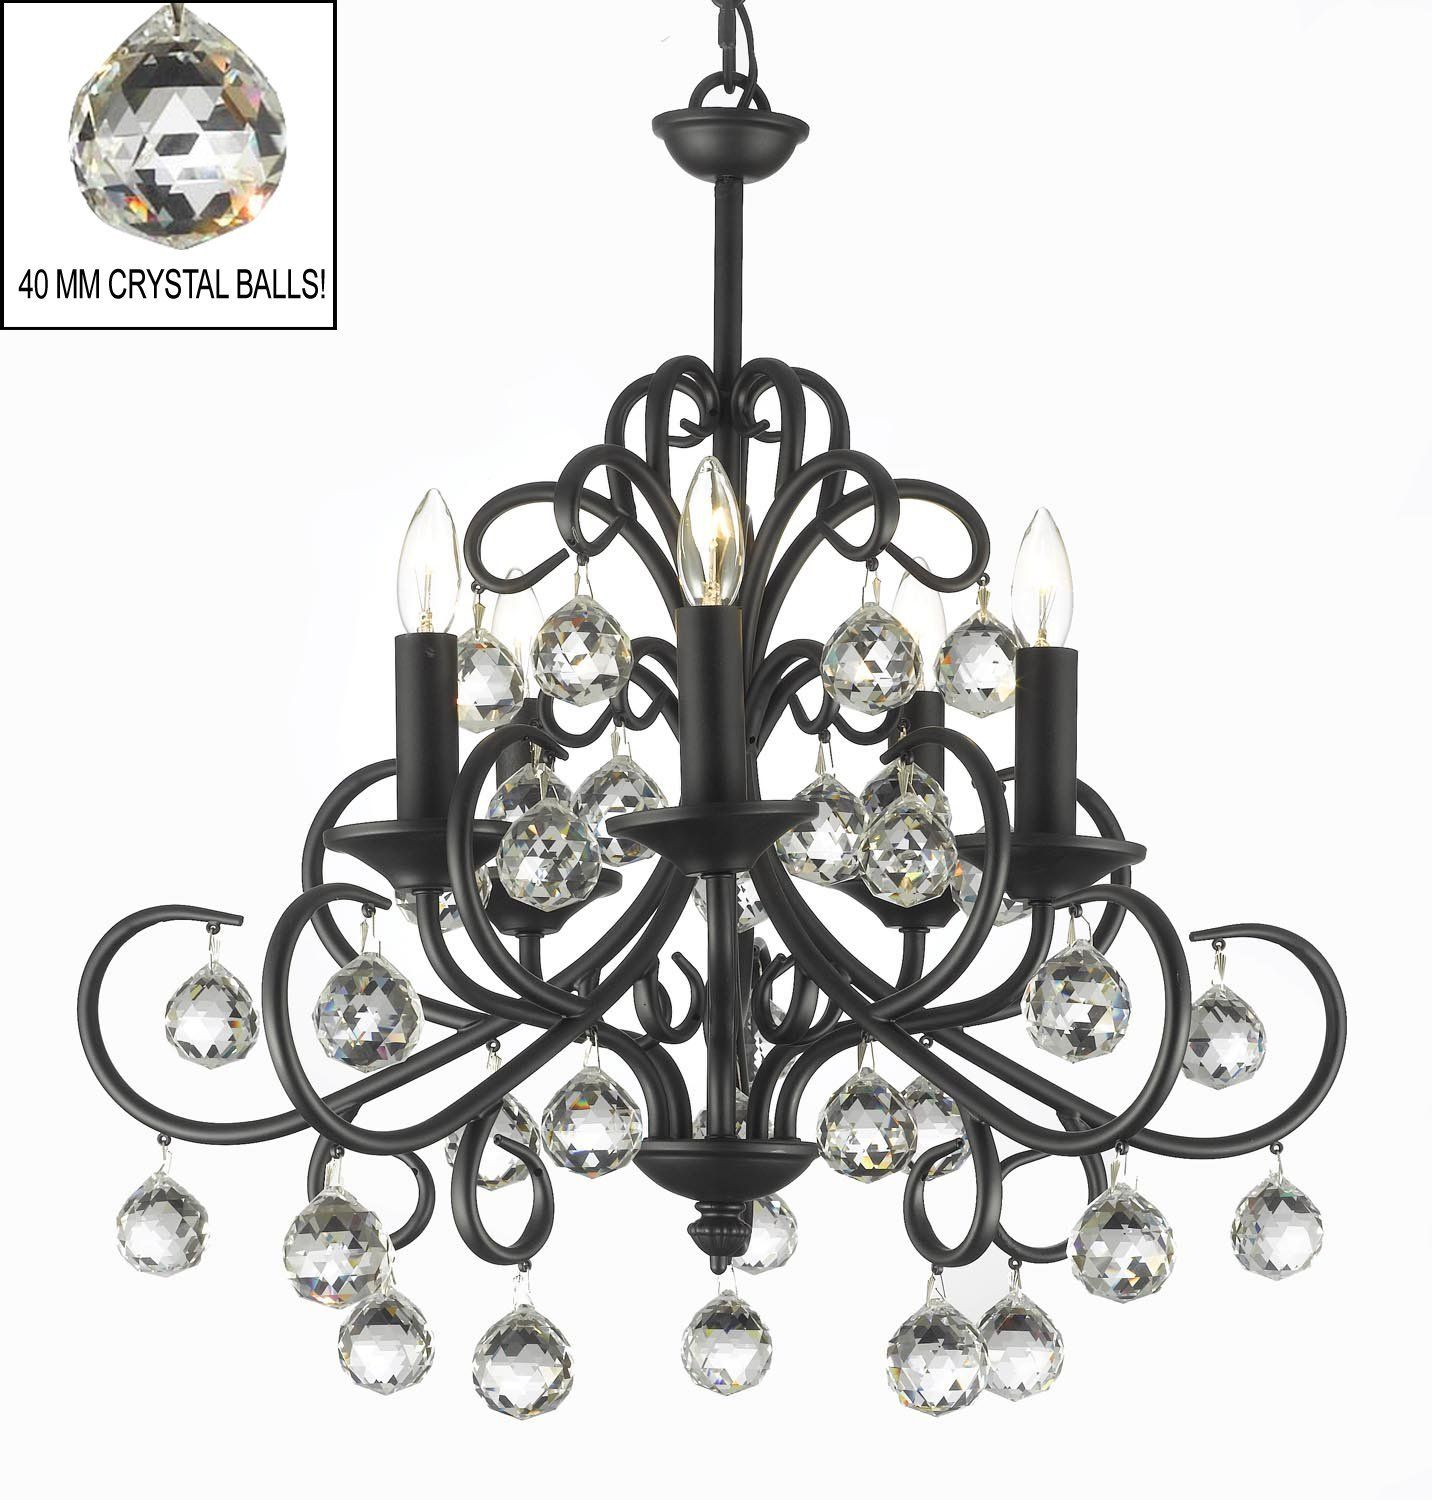 A7 586 5 Wrought Iron Chandelier Chandeliers Crystal Chandelier